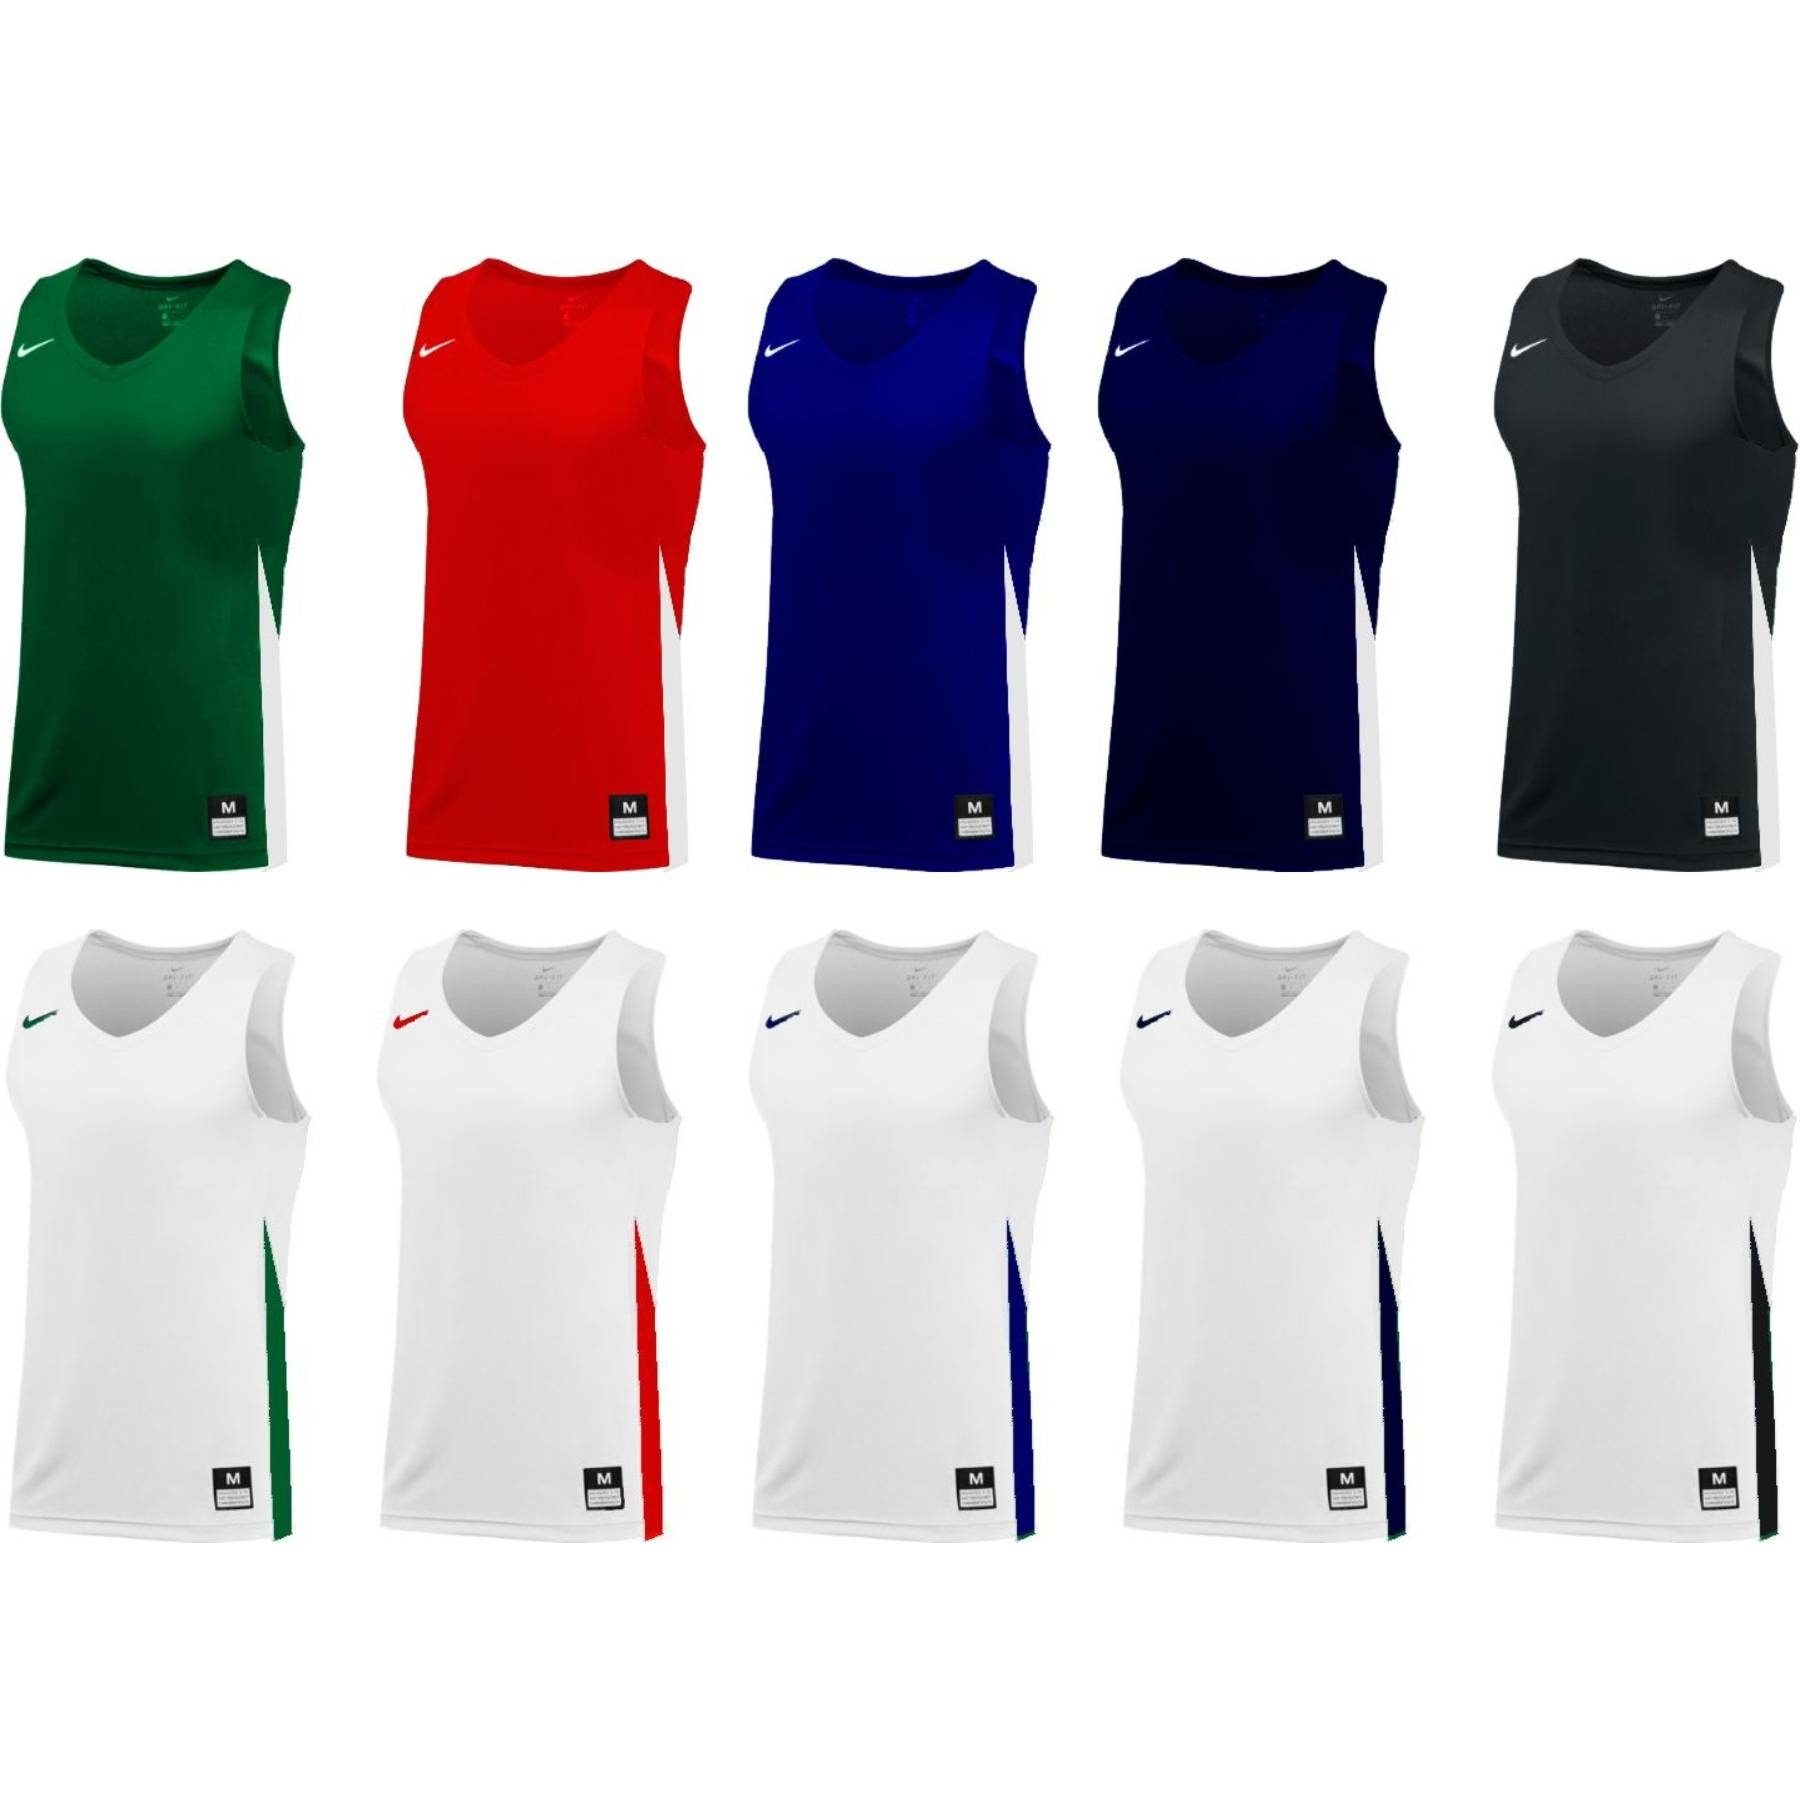 Teamwear - Nike Team Basketball Stock Jersey